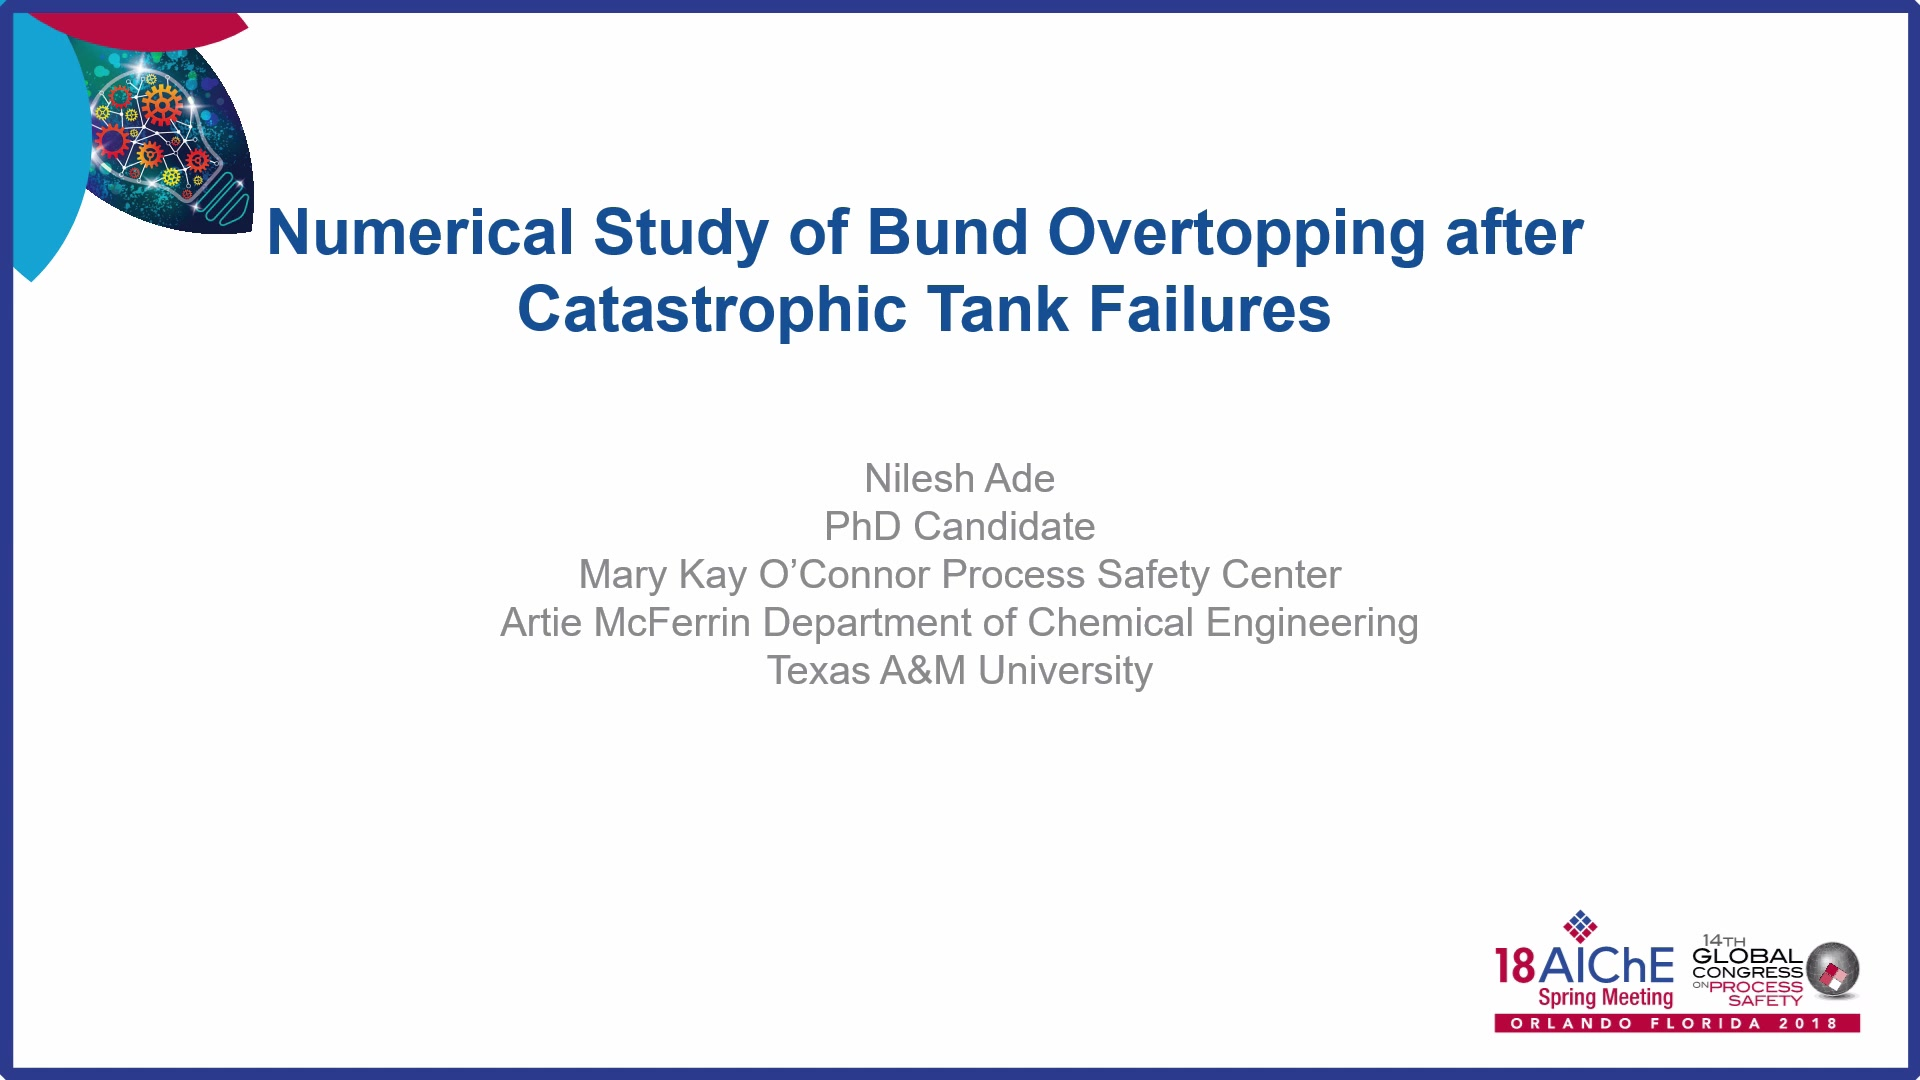 Numerical Study of Bund Overtopping after Catastrophic Tank